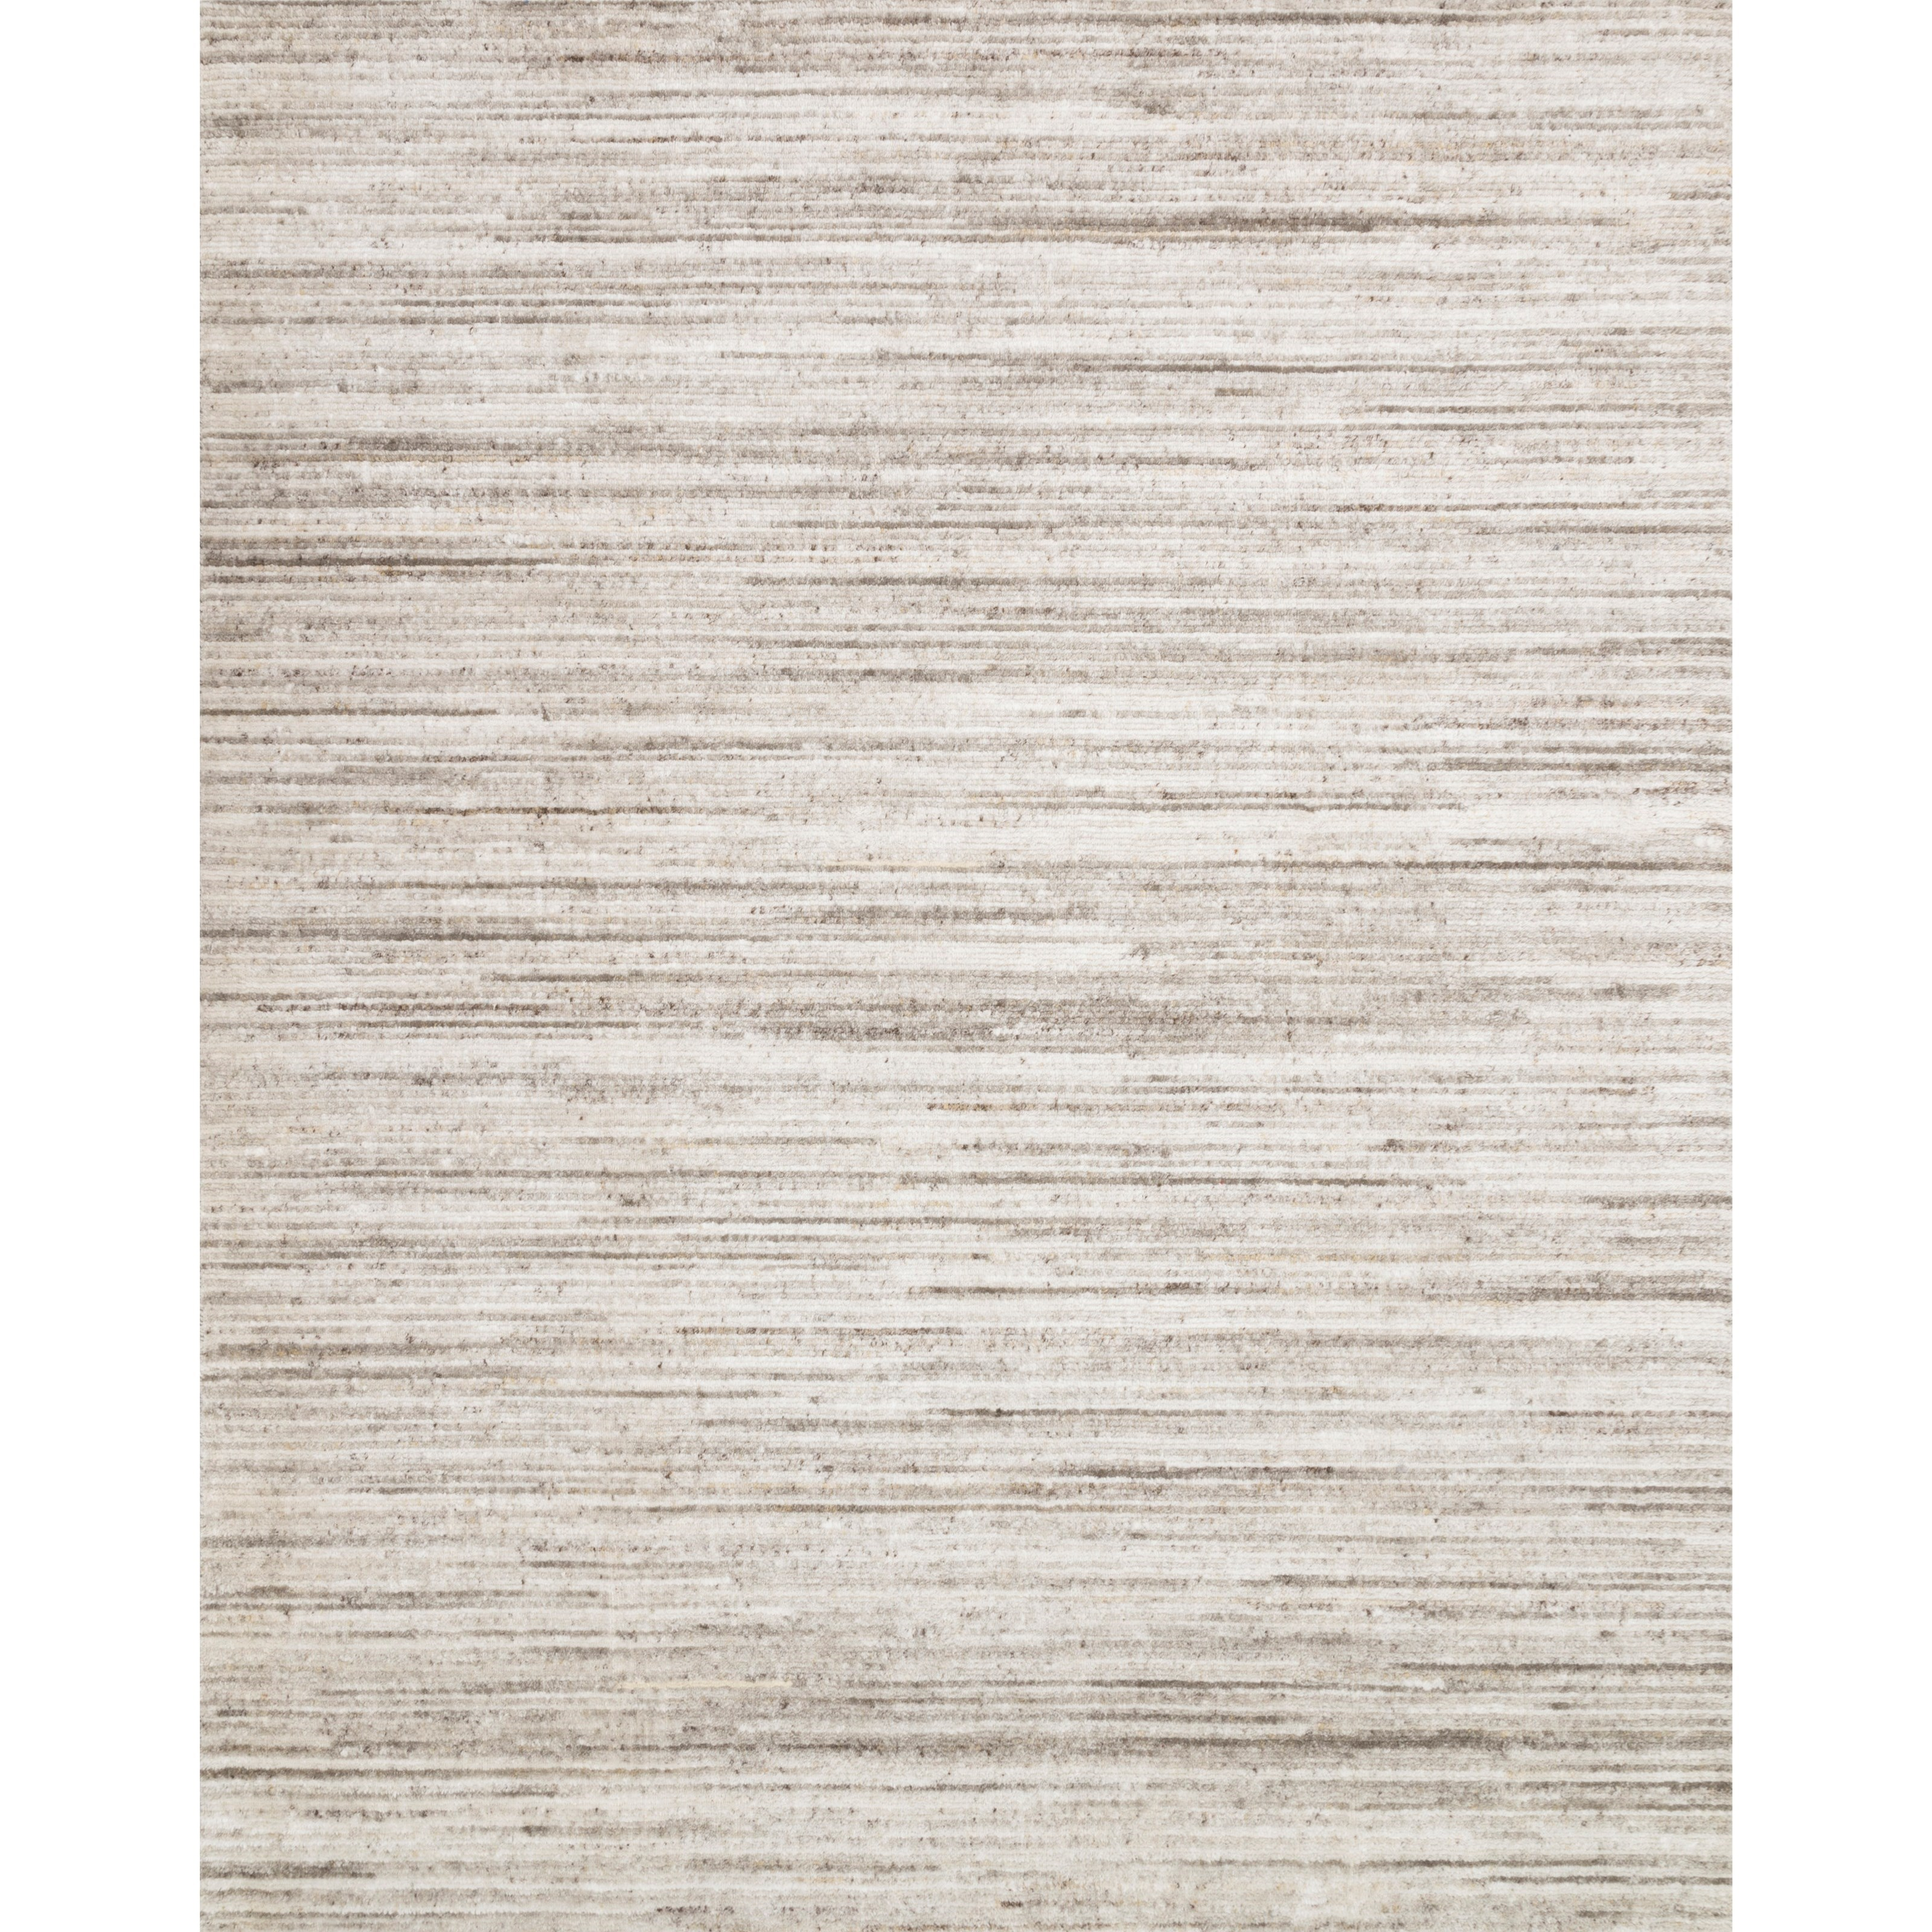 """Brandt 4'0"""" x 6'0"""" Ivory / Oatmeal Rug by Loloi Rugs at Virginia Furniture Market"""